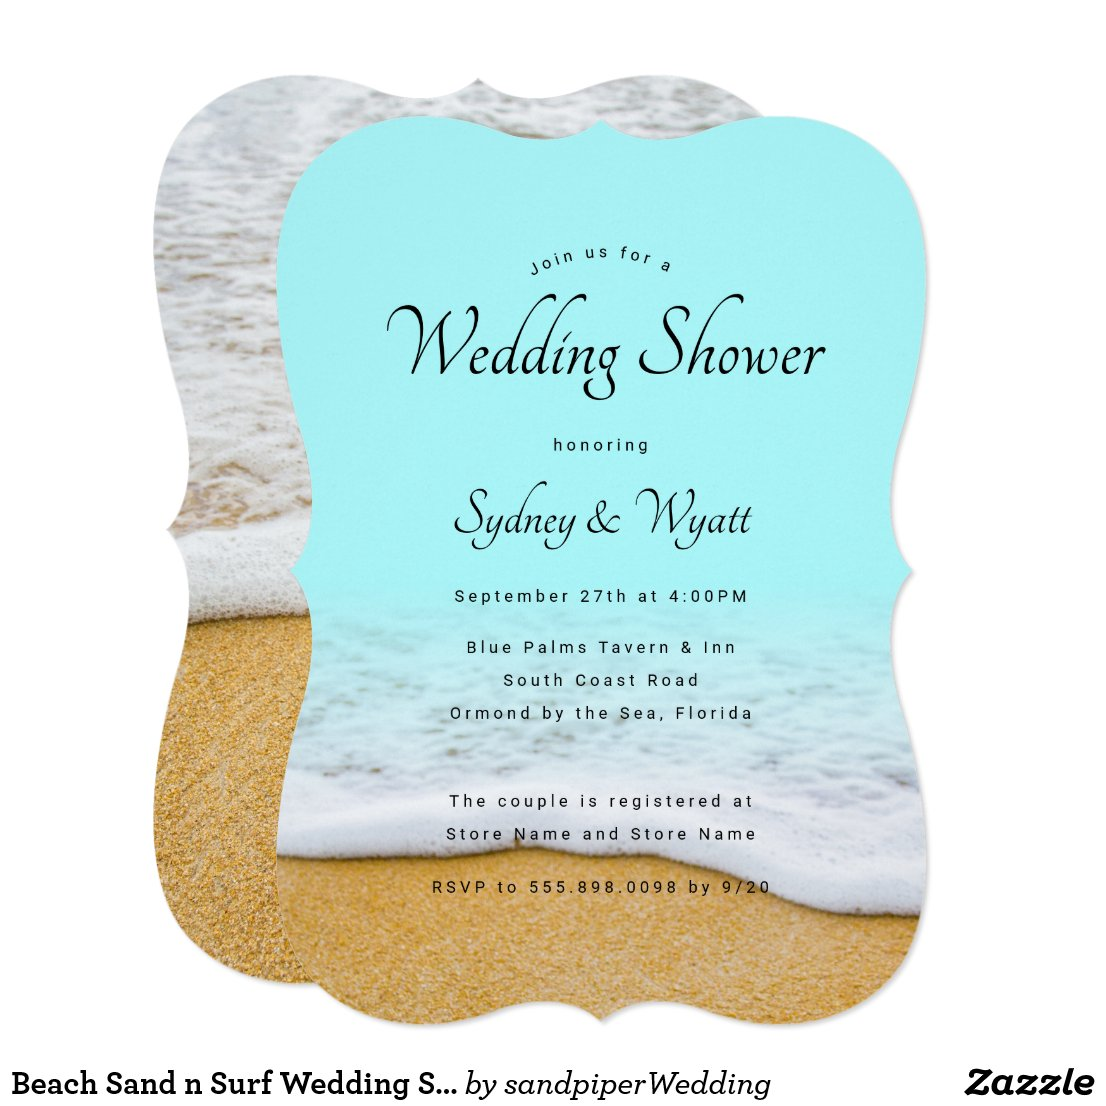 Beach Sand n Surf Wedding Shower Invitations